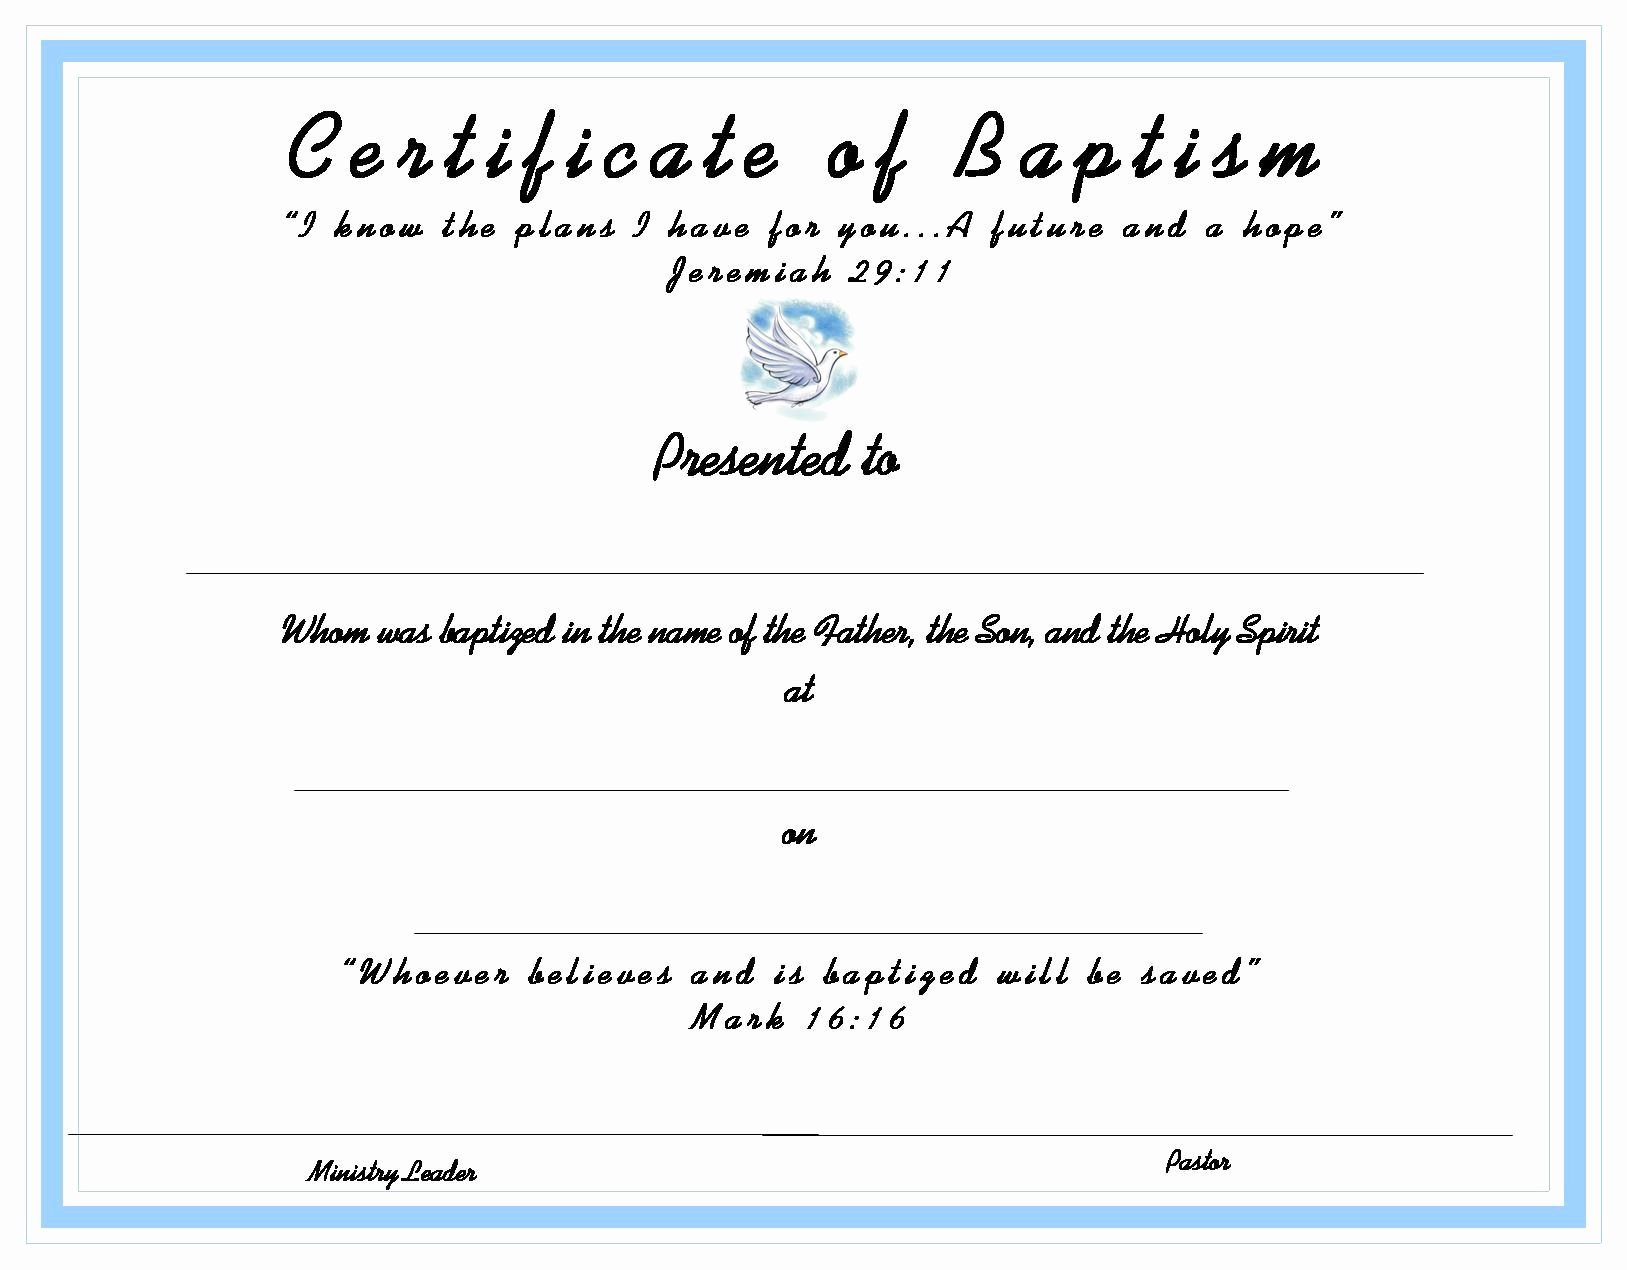 Certificate Of Baptism Template Inspirational Baptism Certificate for Your